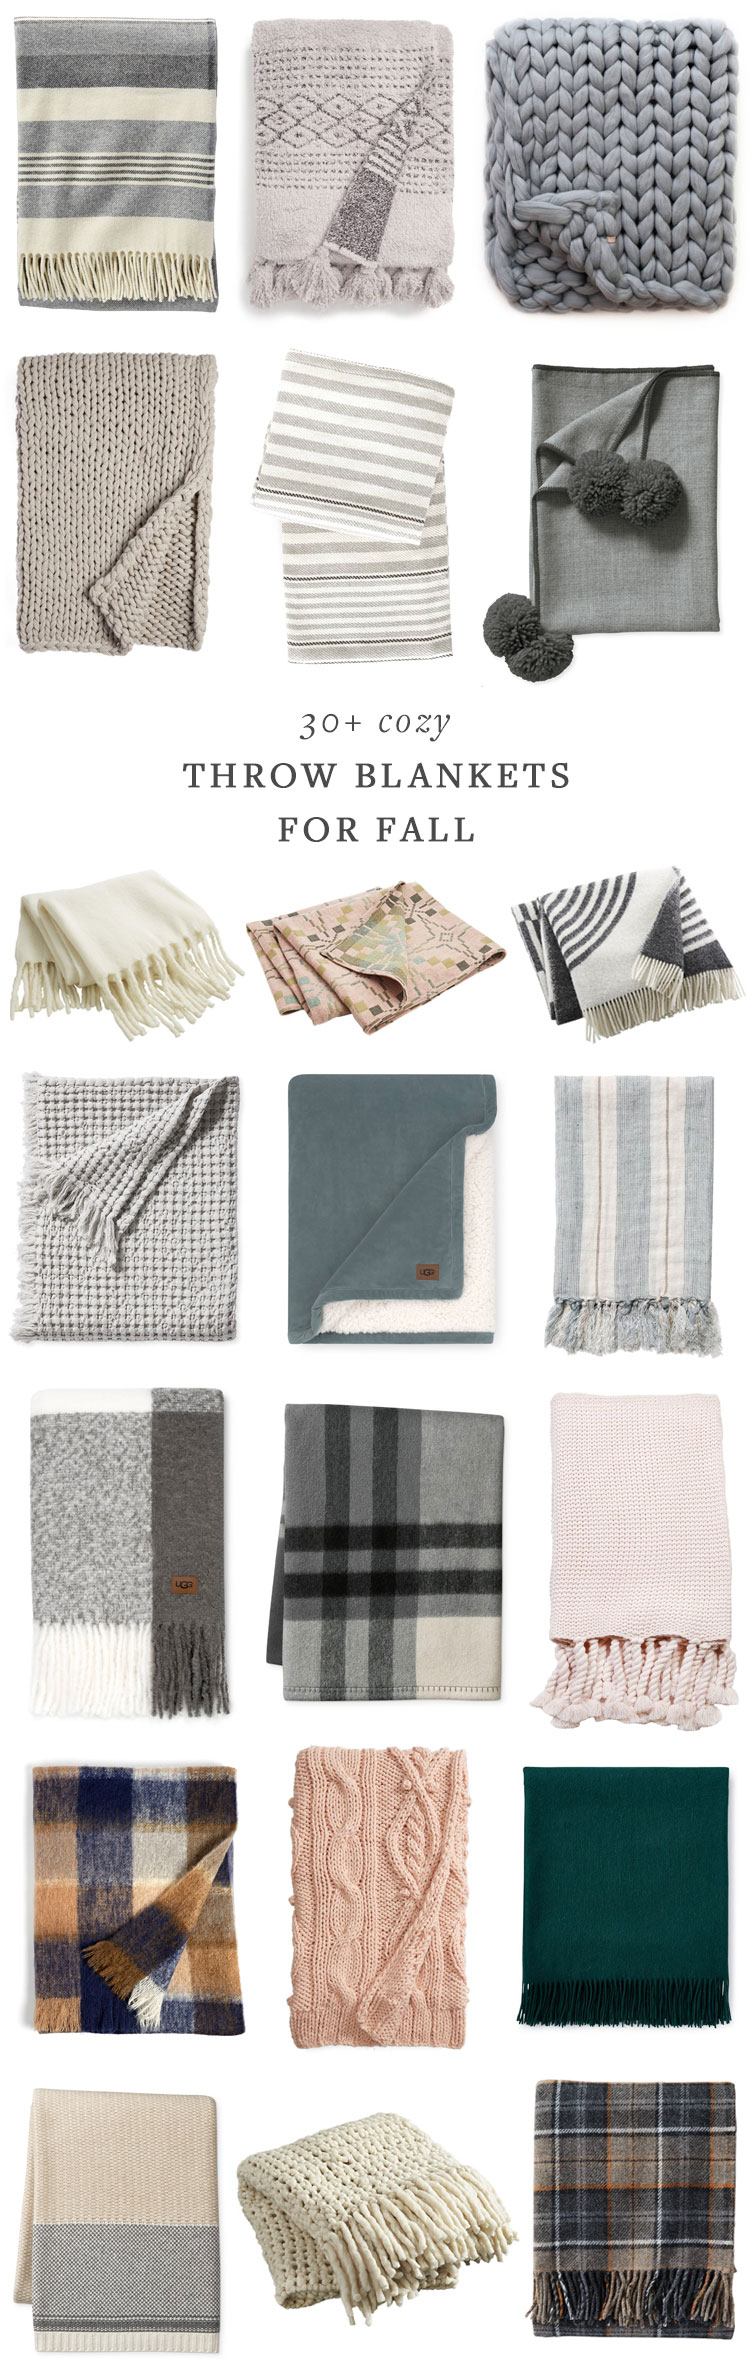 the best cozy throw blankets for fall! #throws #throwblanket #blankets #cozy #hygge #fallvibes #fall